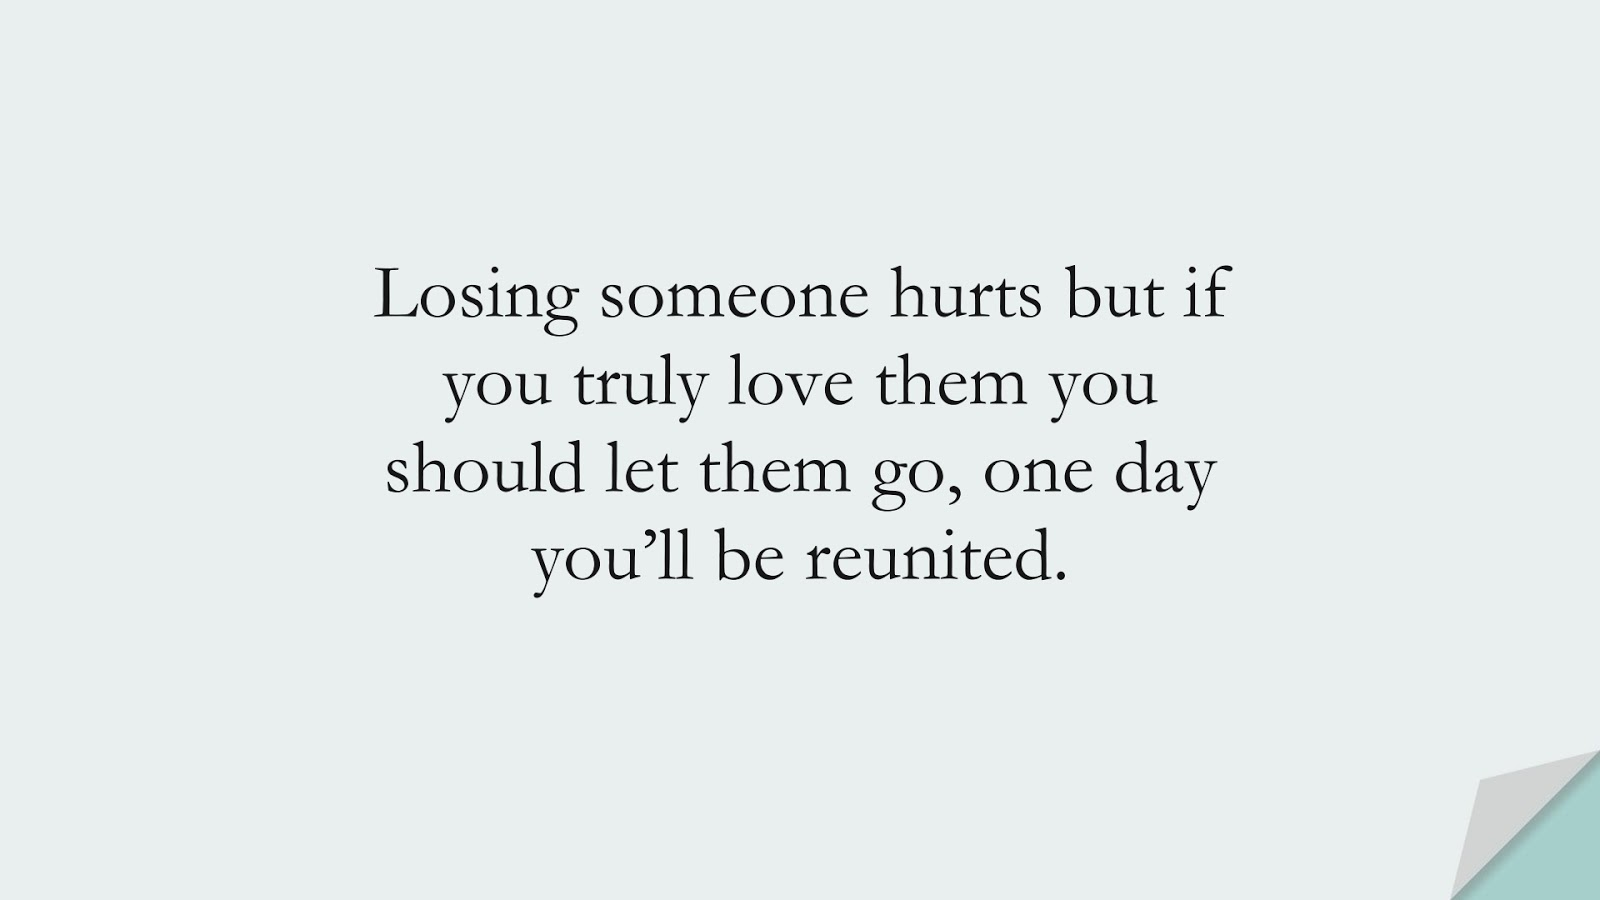 Losing someone hurts but if you truly love them you should let them go, one day you'll be reunited.FALSE